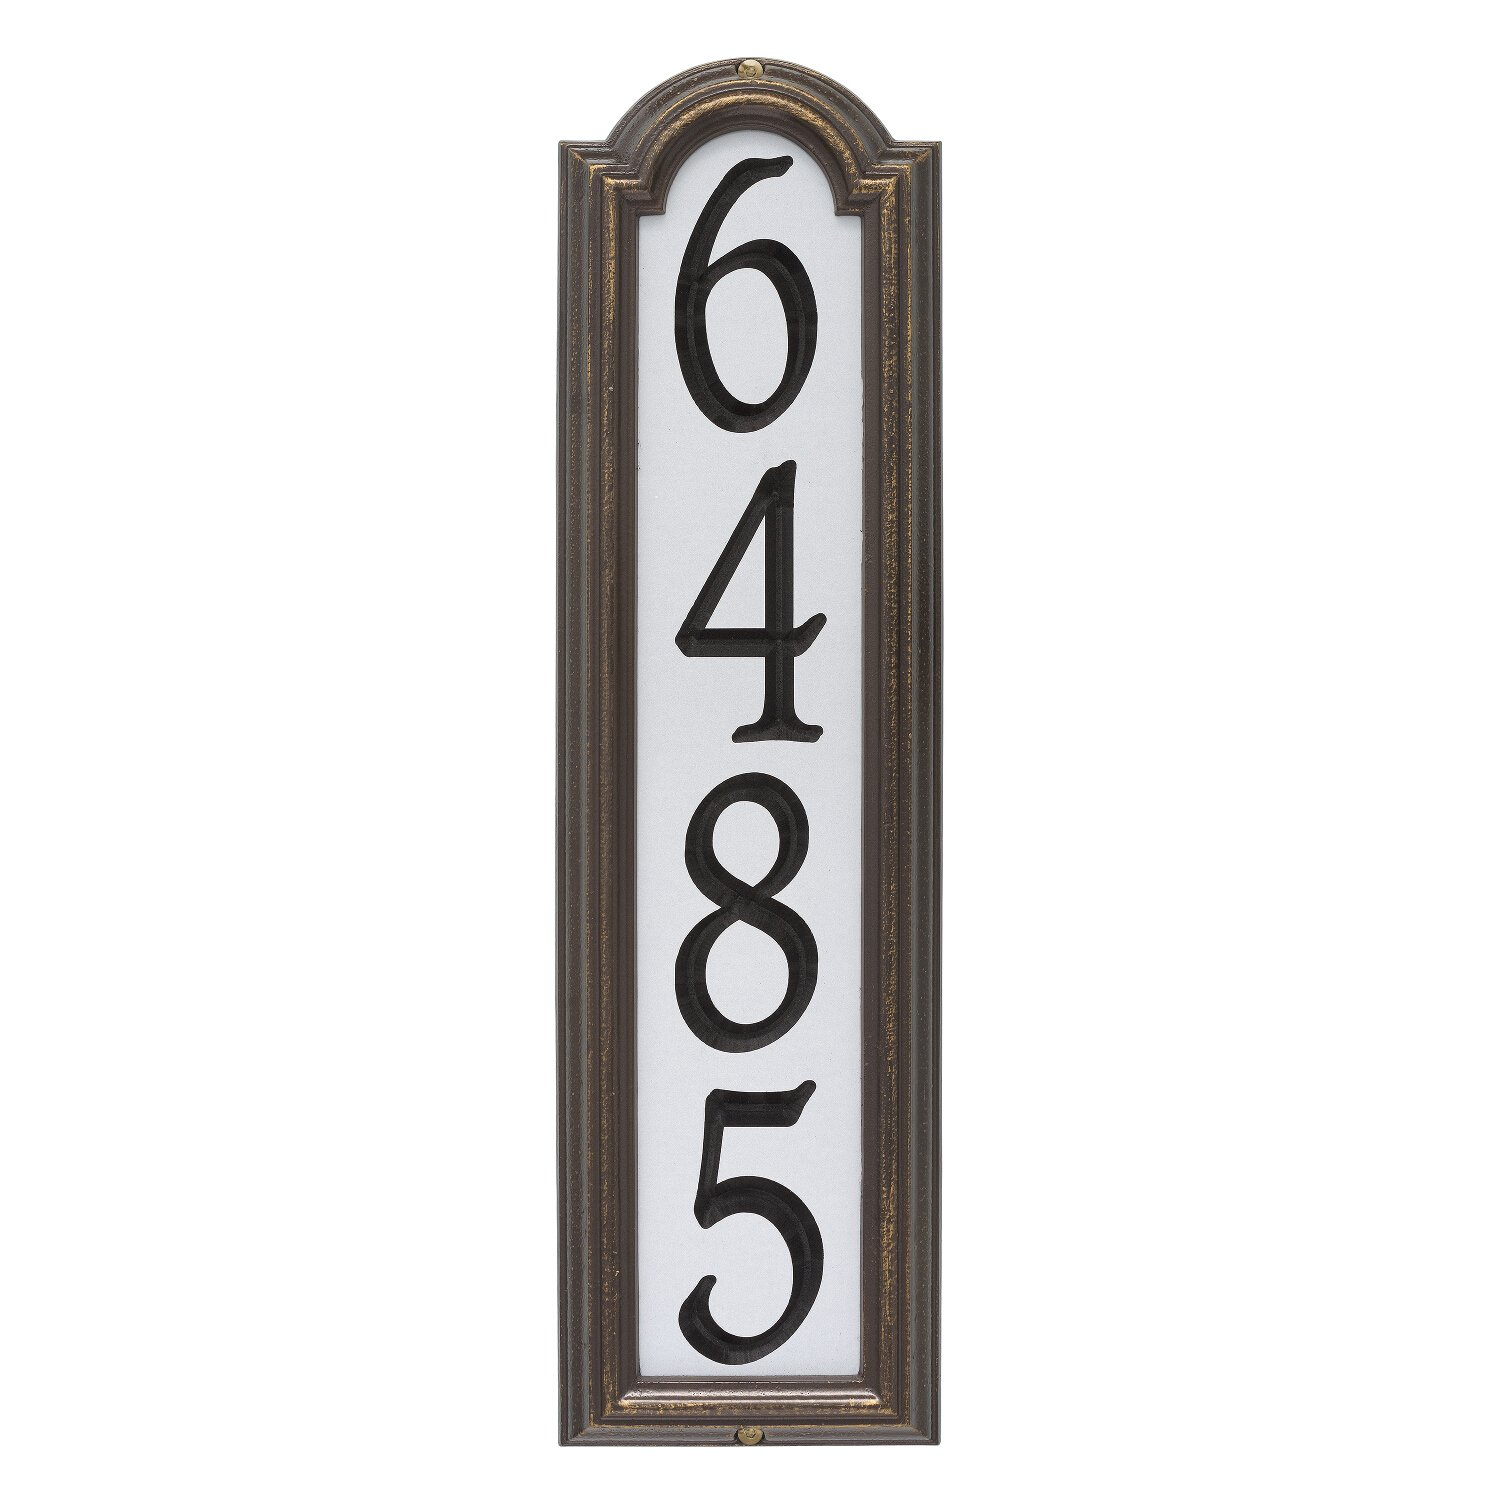 Custom Manchester REFLECTIVE VERTICAL WALL Address Plaque 21''H x 6''W by Whitehall (Image #1)